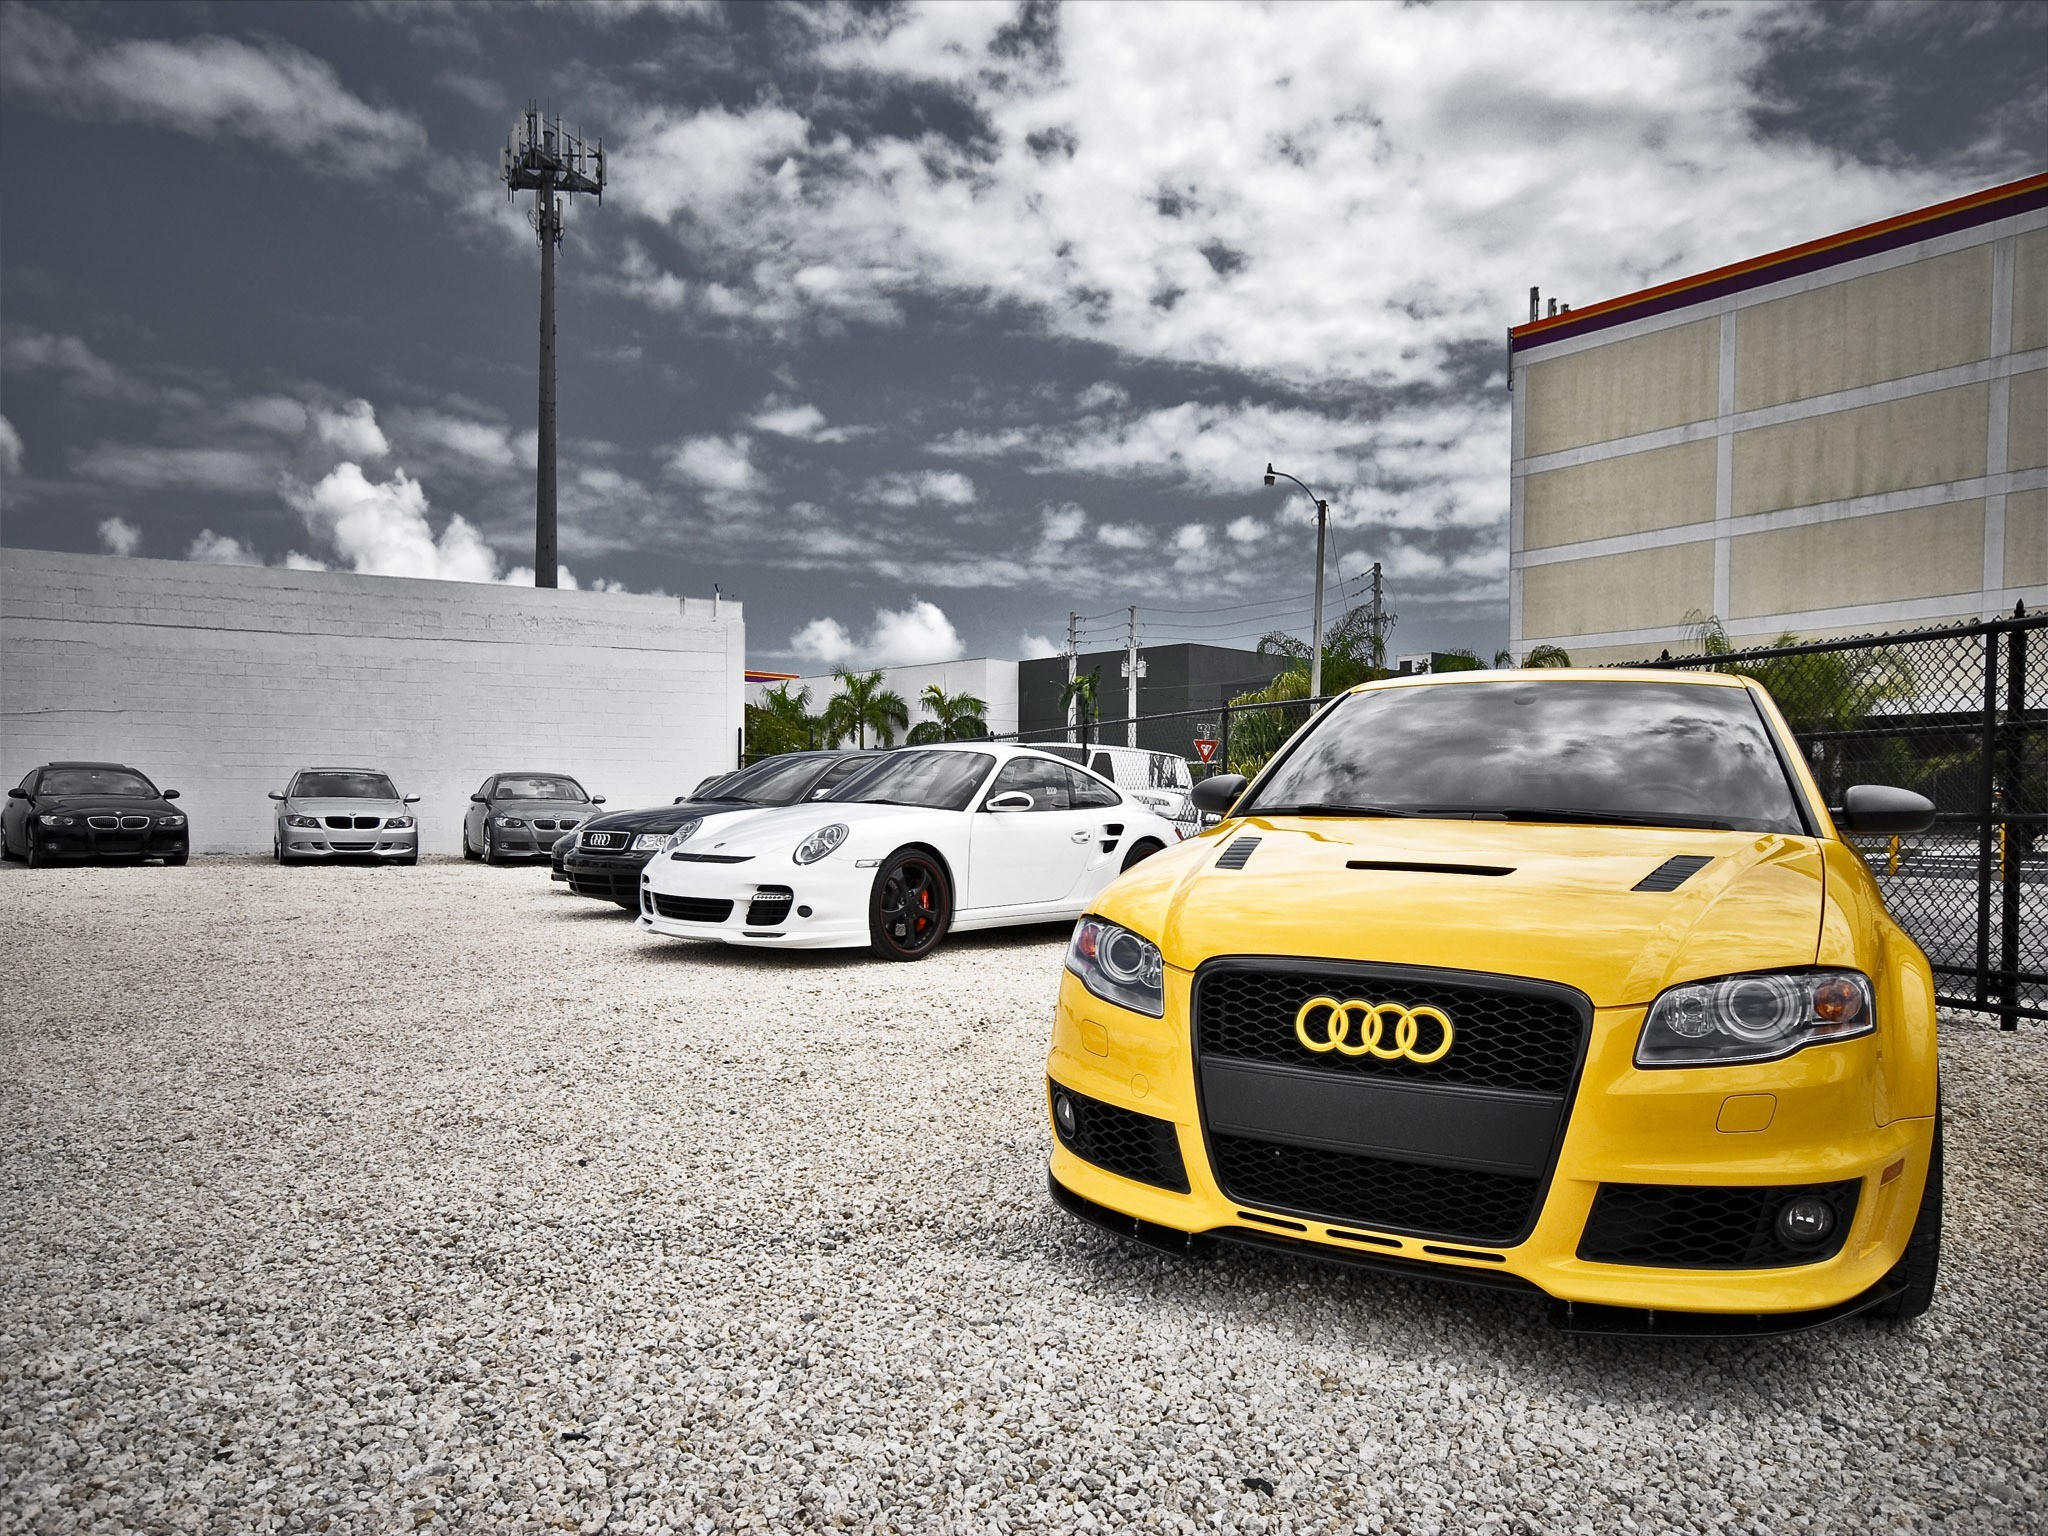 cars Audi HD Wallpaper